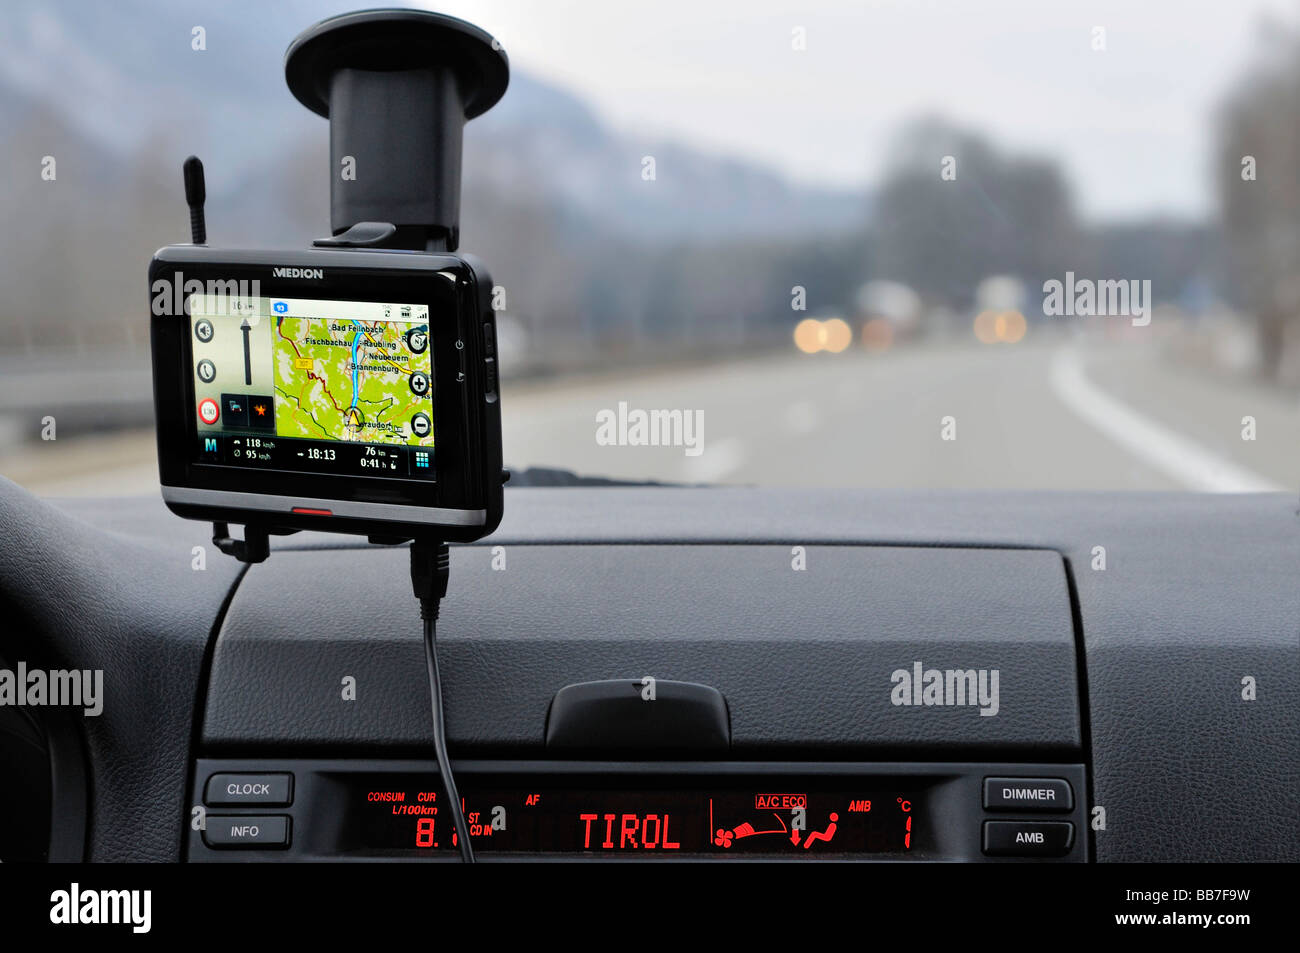 Navigation system in a car, Bavaria, Germany, Europe - Stock Image